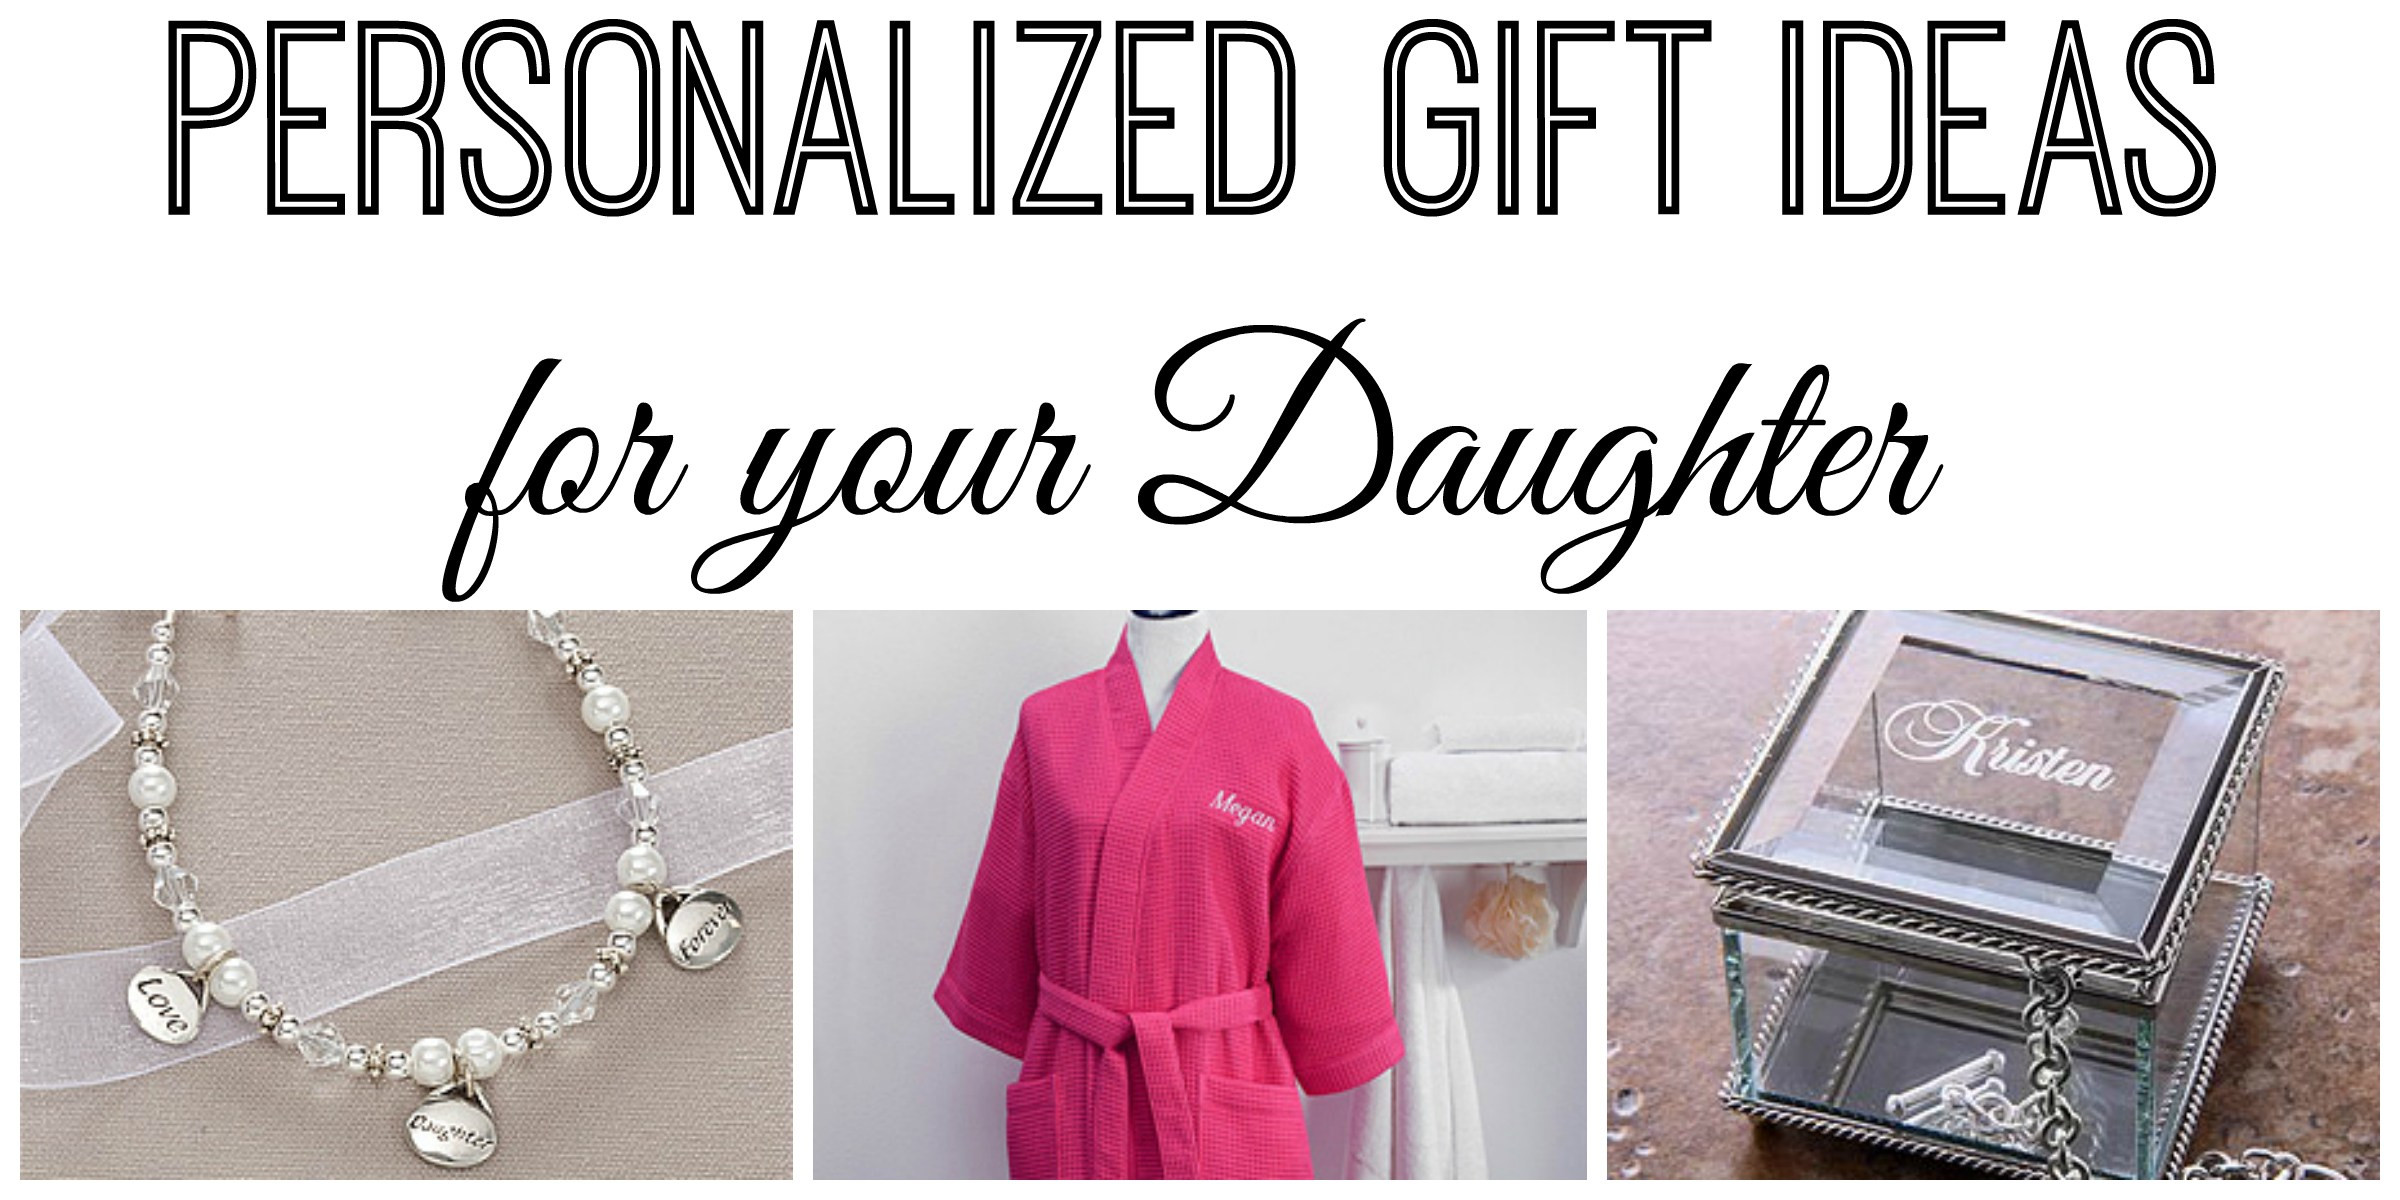 Best ideas about Custom Gift Ideas . Save or Pin Personalized Christmas Gift Ideas for your Daughter Now.